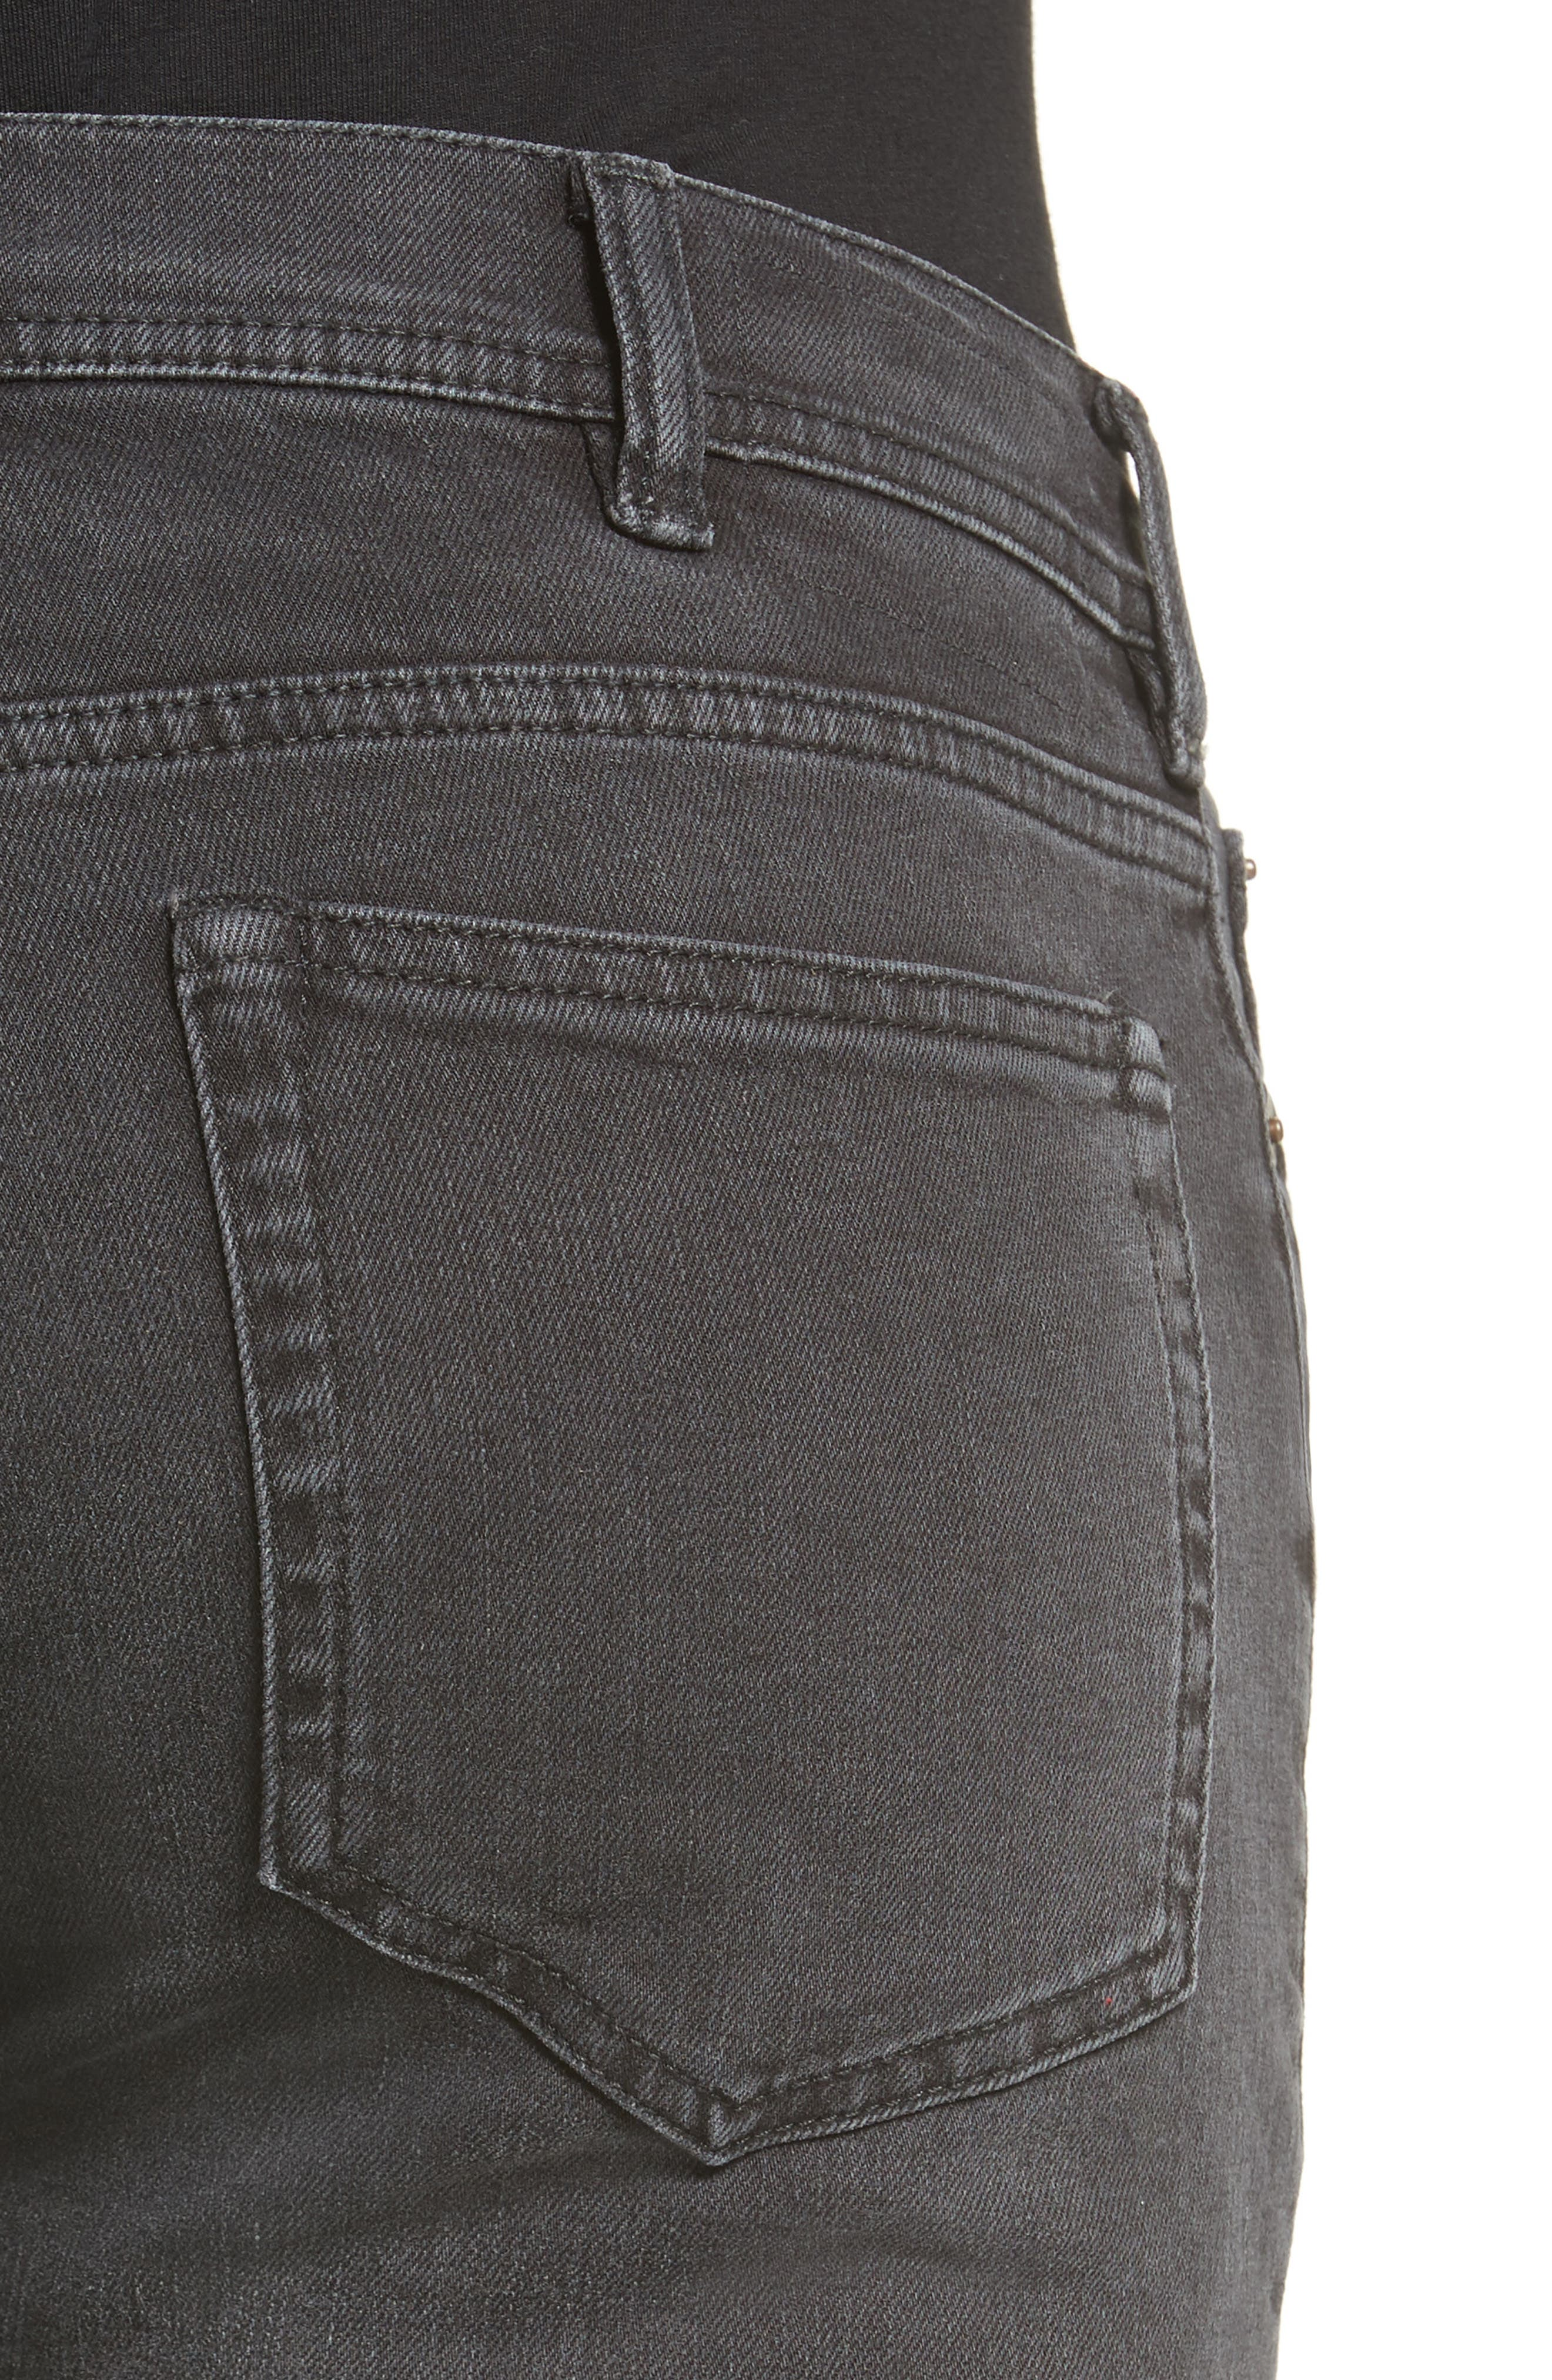 North Skinny Fit Jeans,                             Alternate thumbnail 4, color,                             USED BLACK